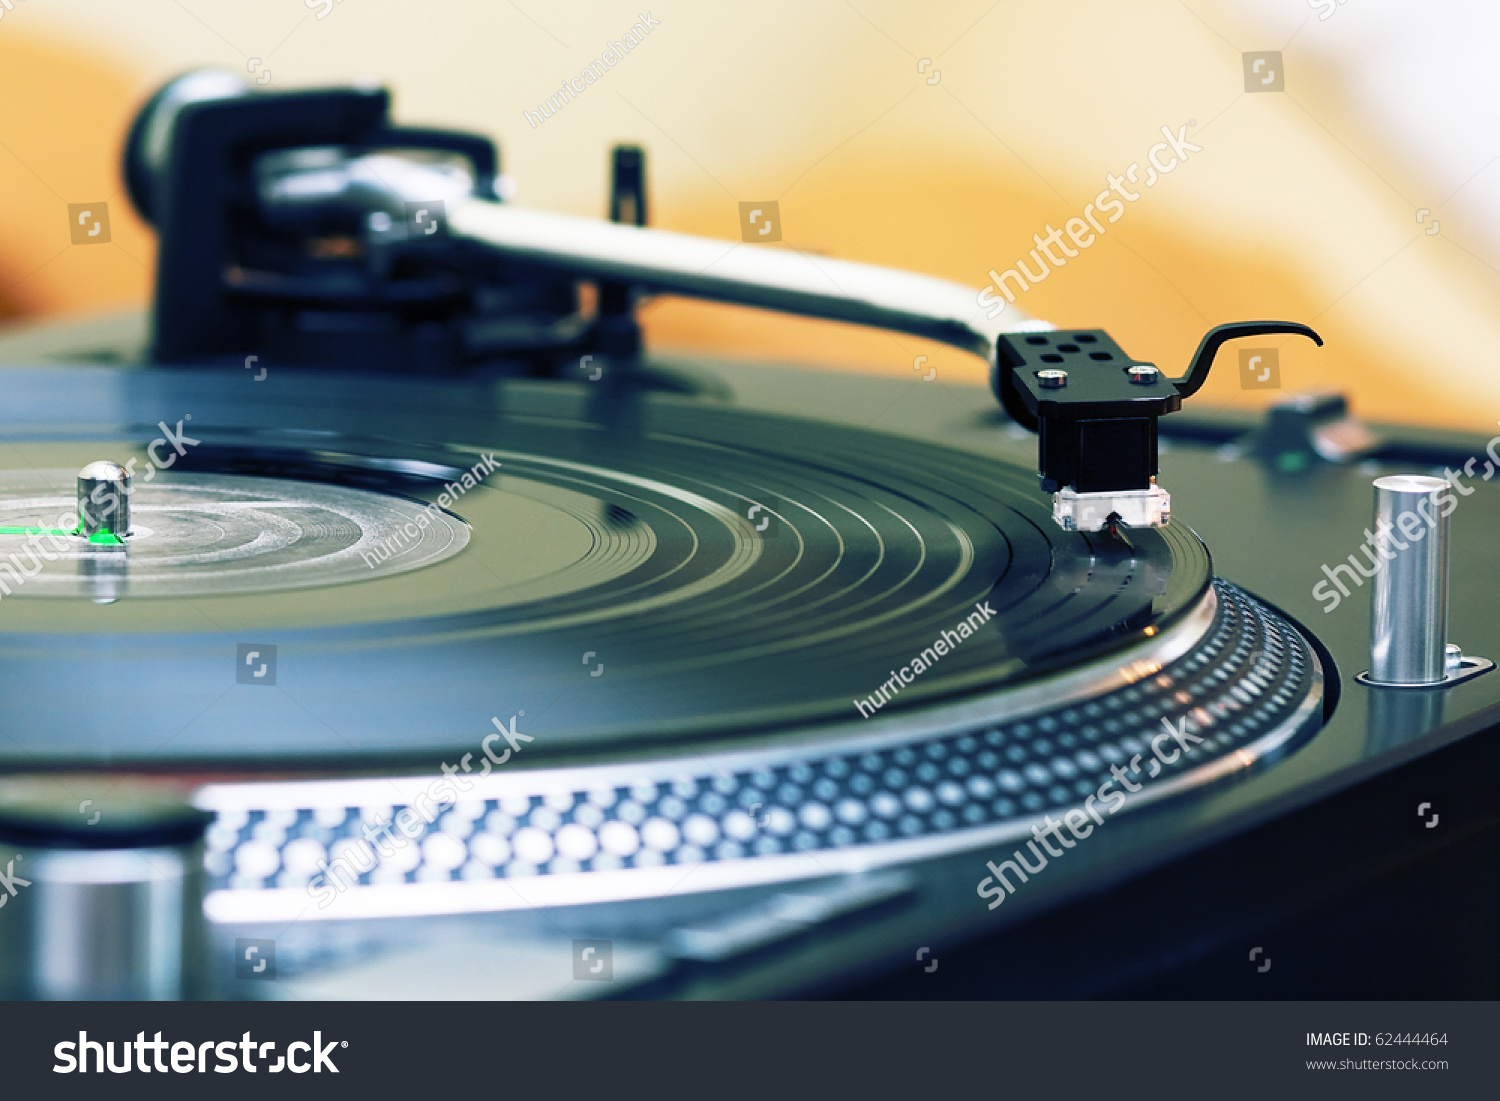 Royalty-free Dj turntables for scratch.Audio… #62444464 ...